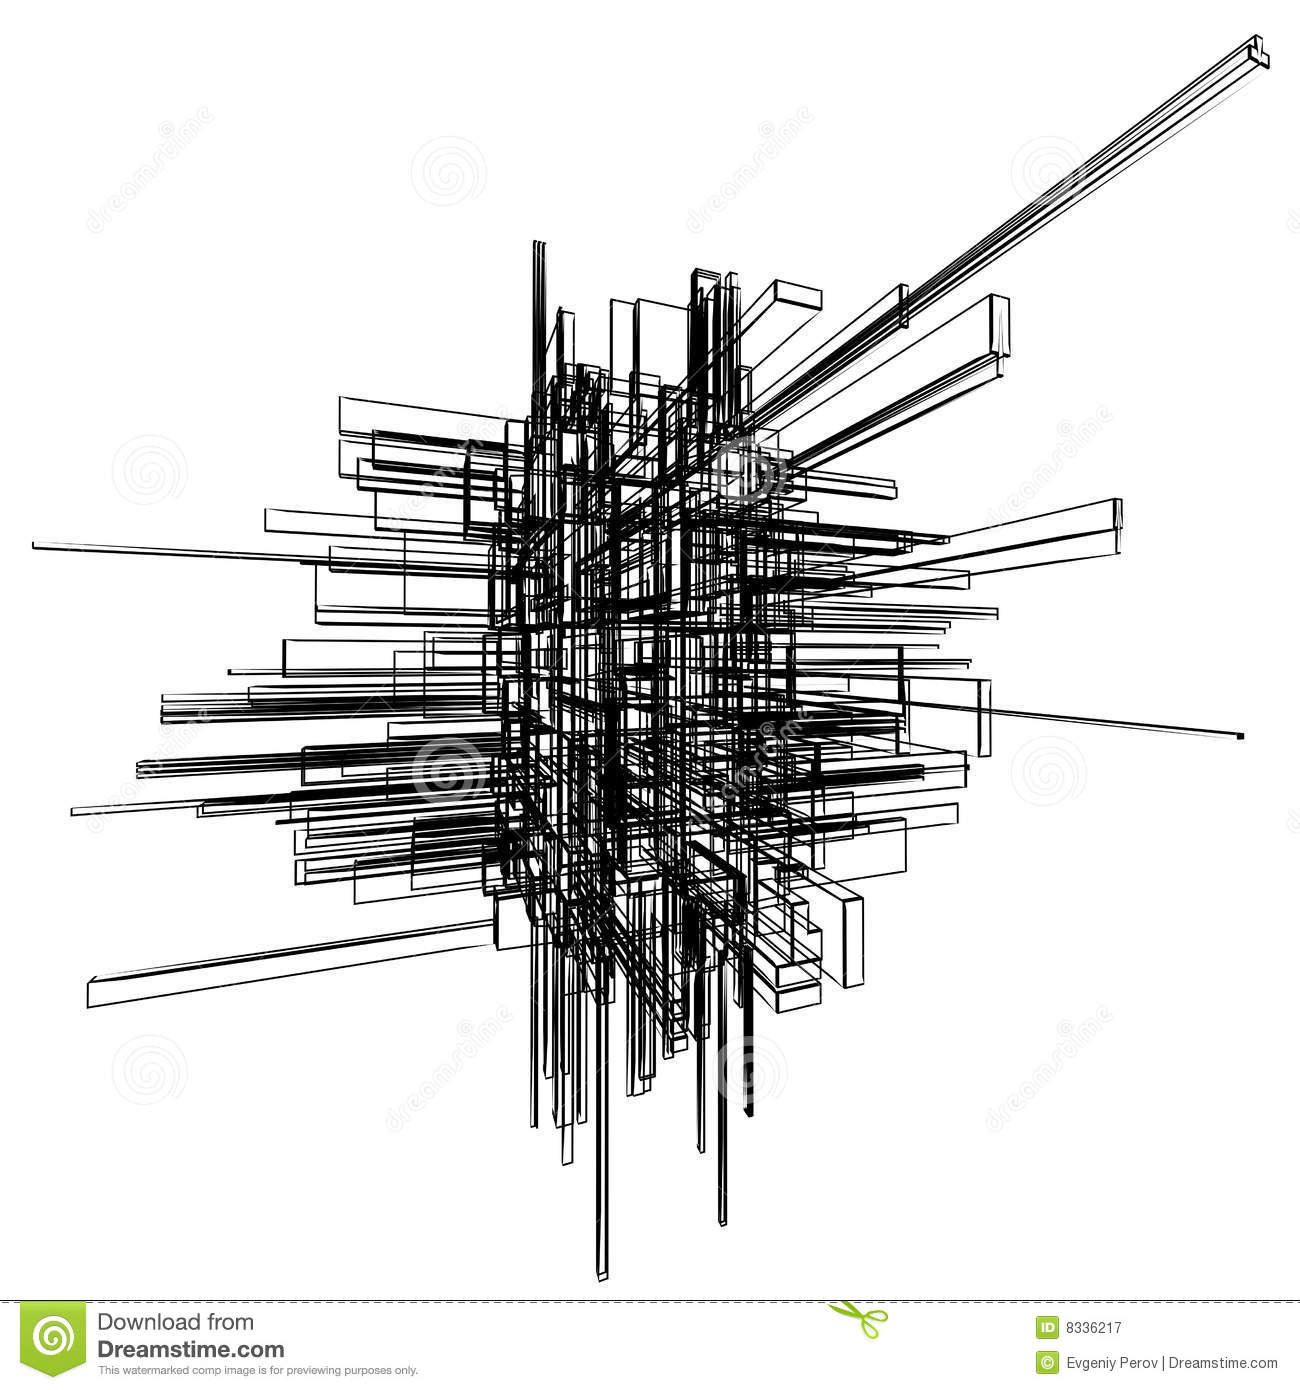 Wireframe abstracto